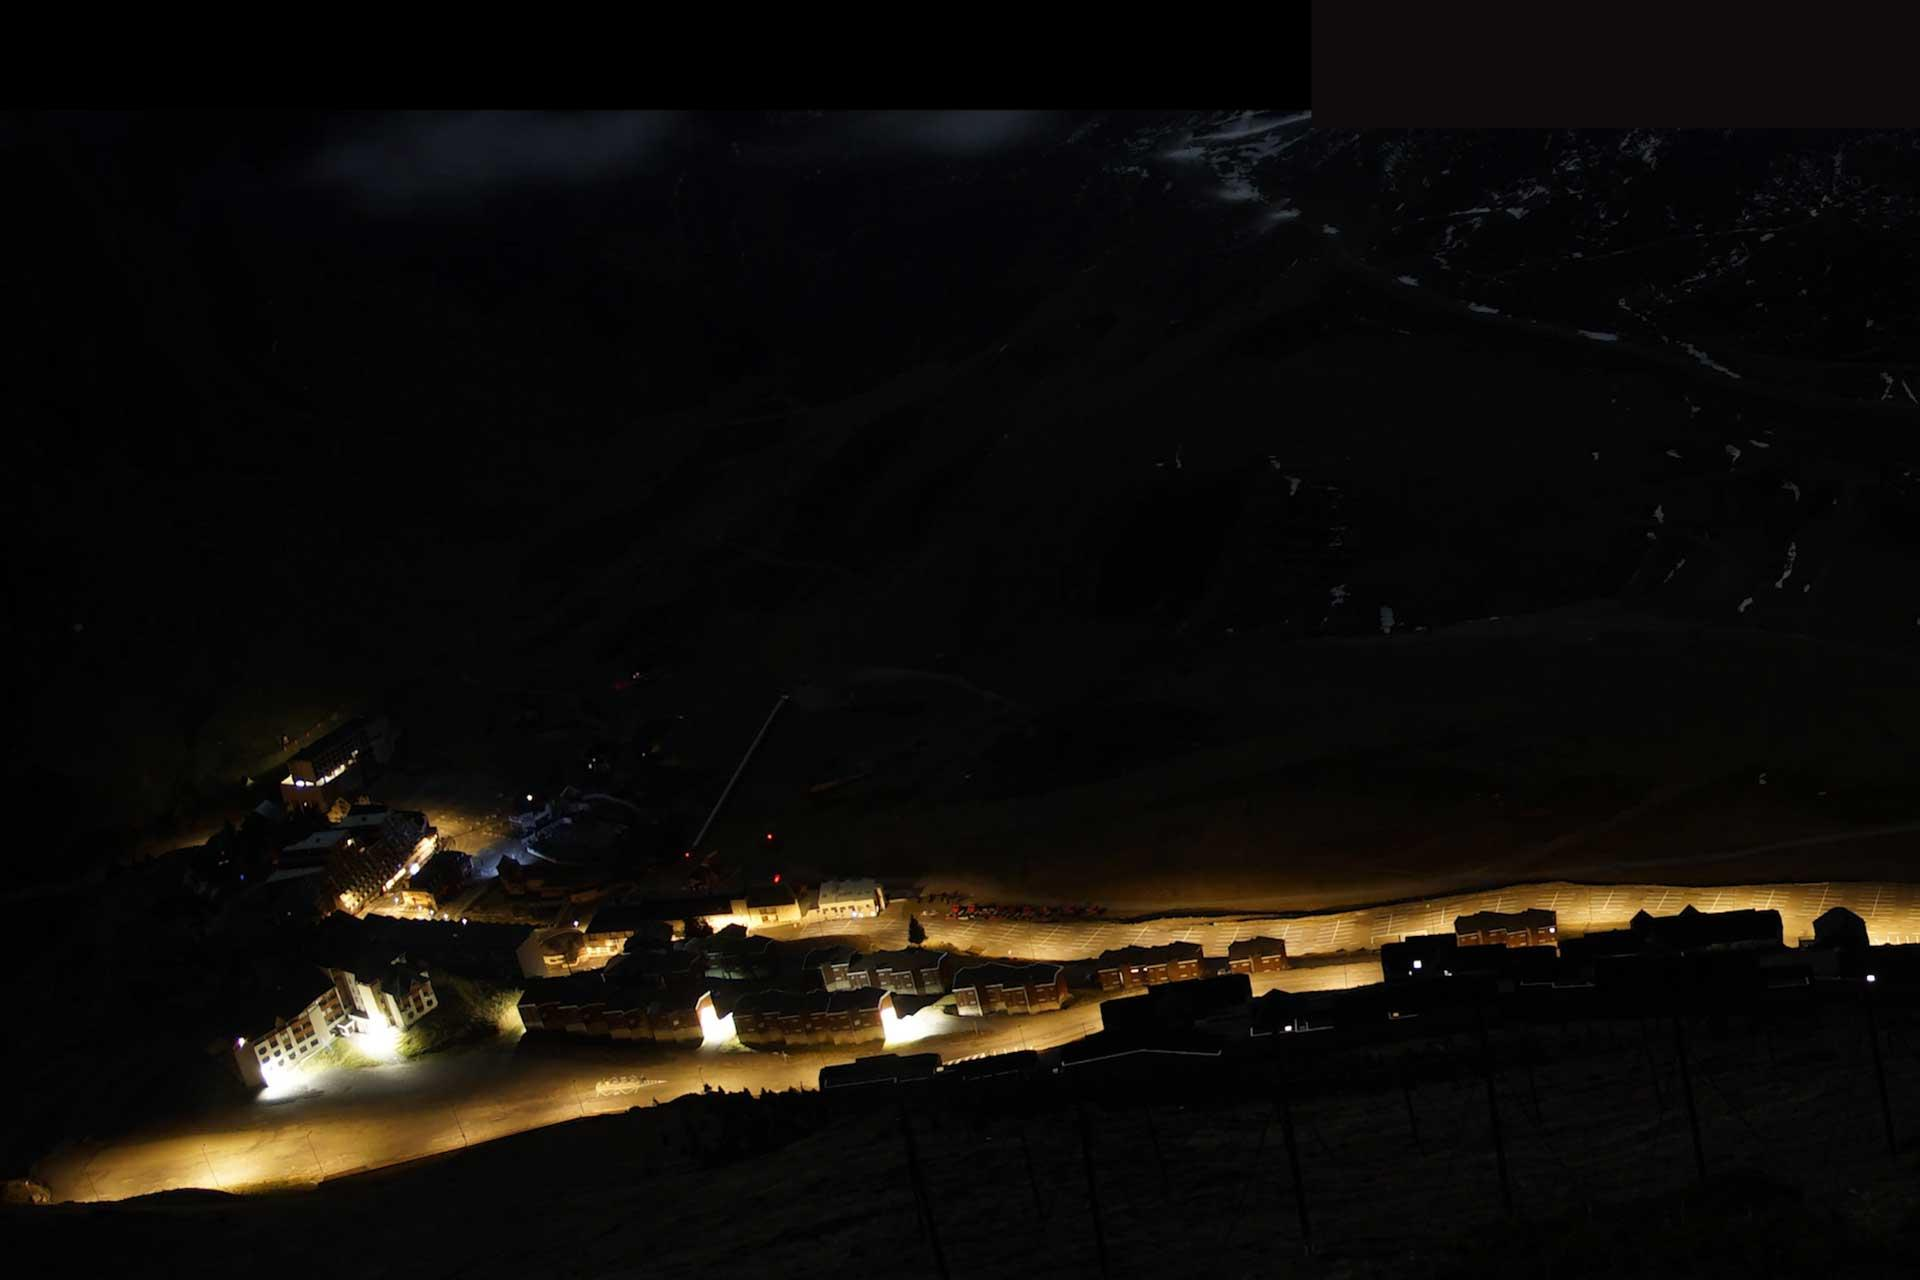 Smart lighting solution enables the town of La Mongie to dim the light so astronomers can appreciate the fully beauty of the sky above Pic du Midi in France